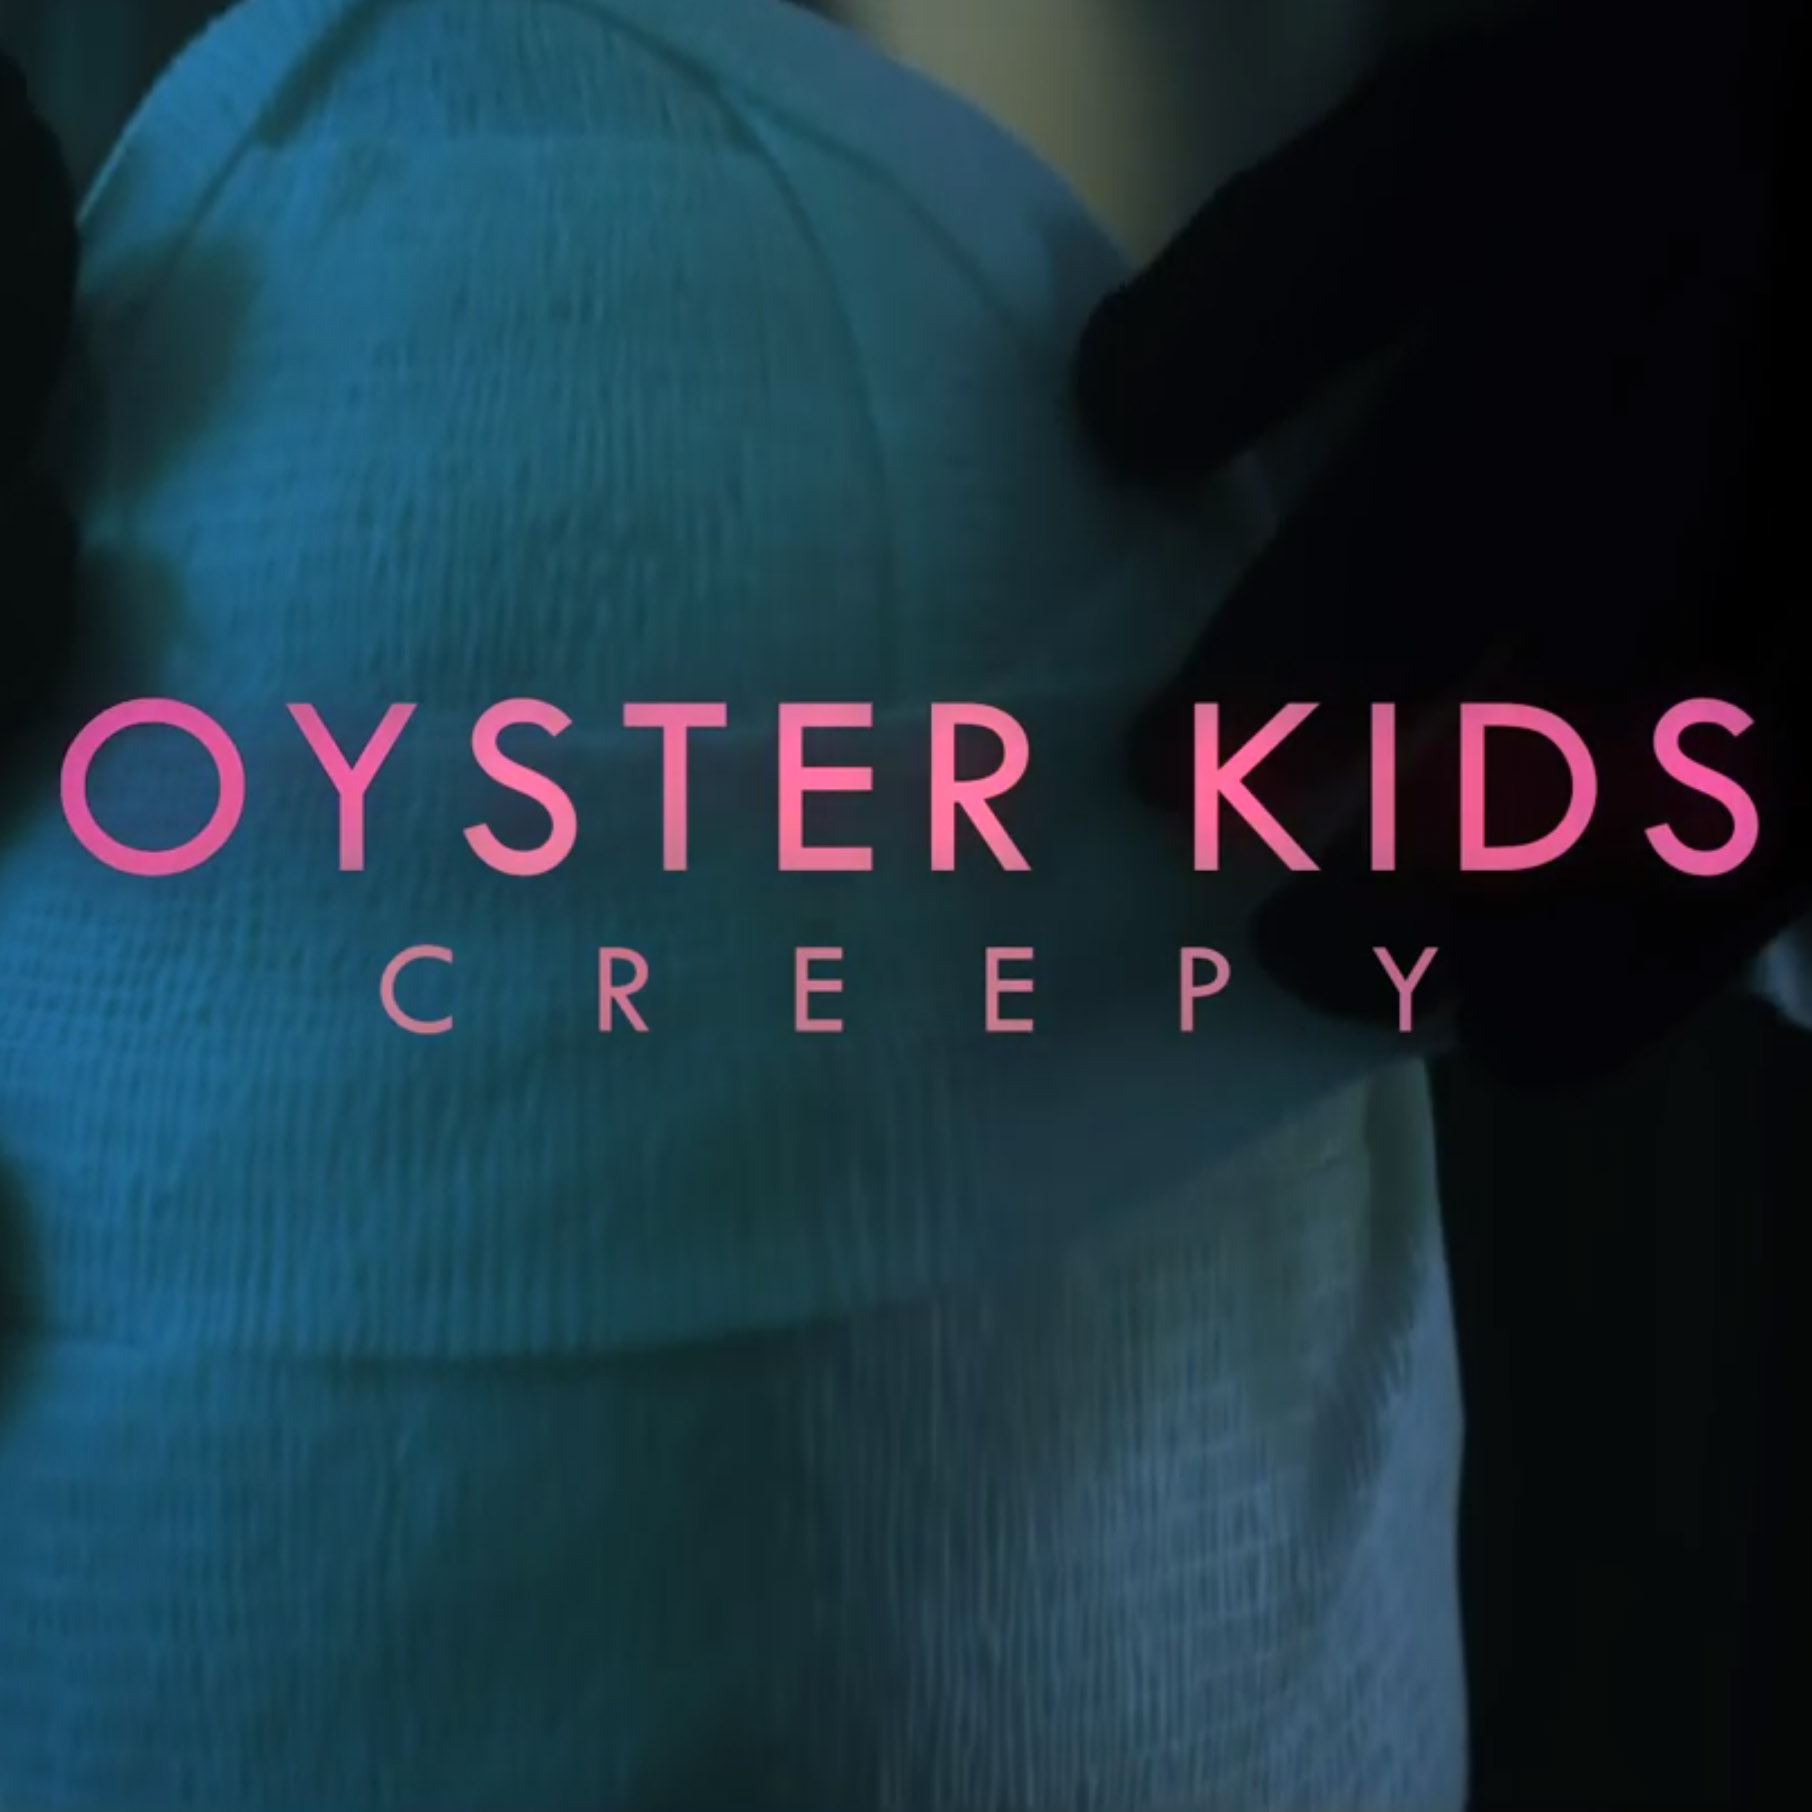 oyster kids creepy